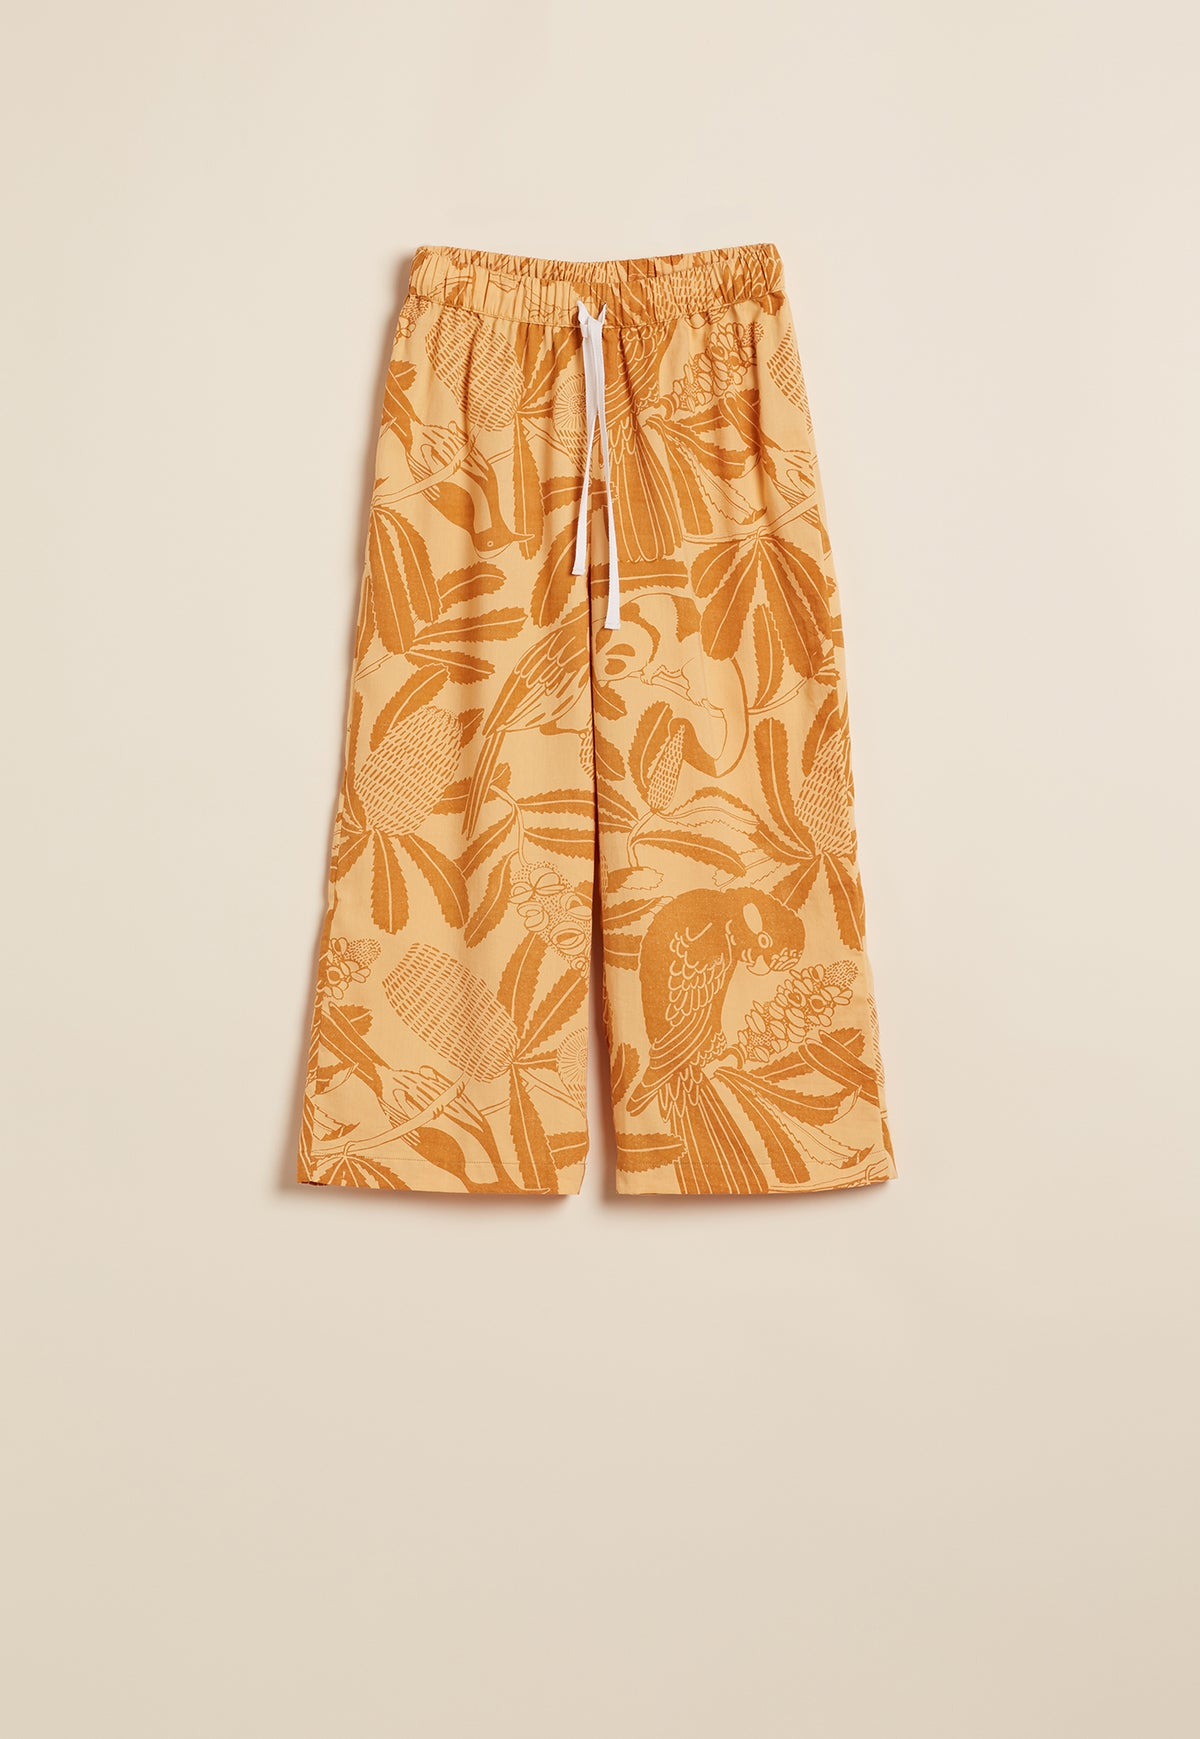 Pyjama Pants - Clay Banksia